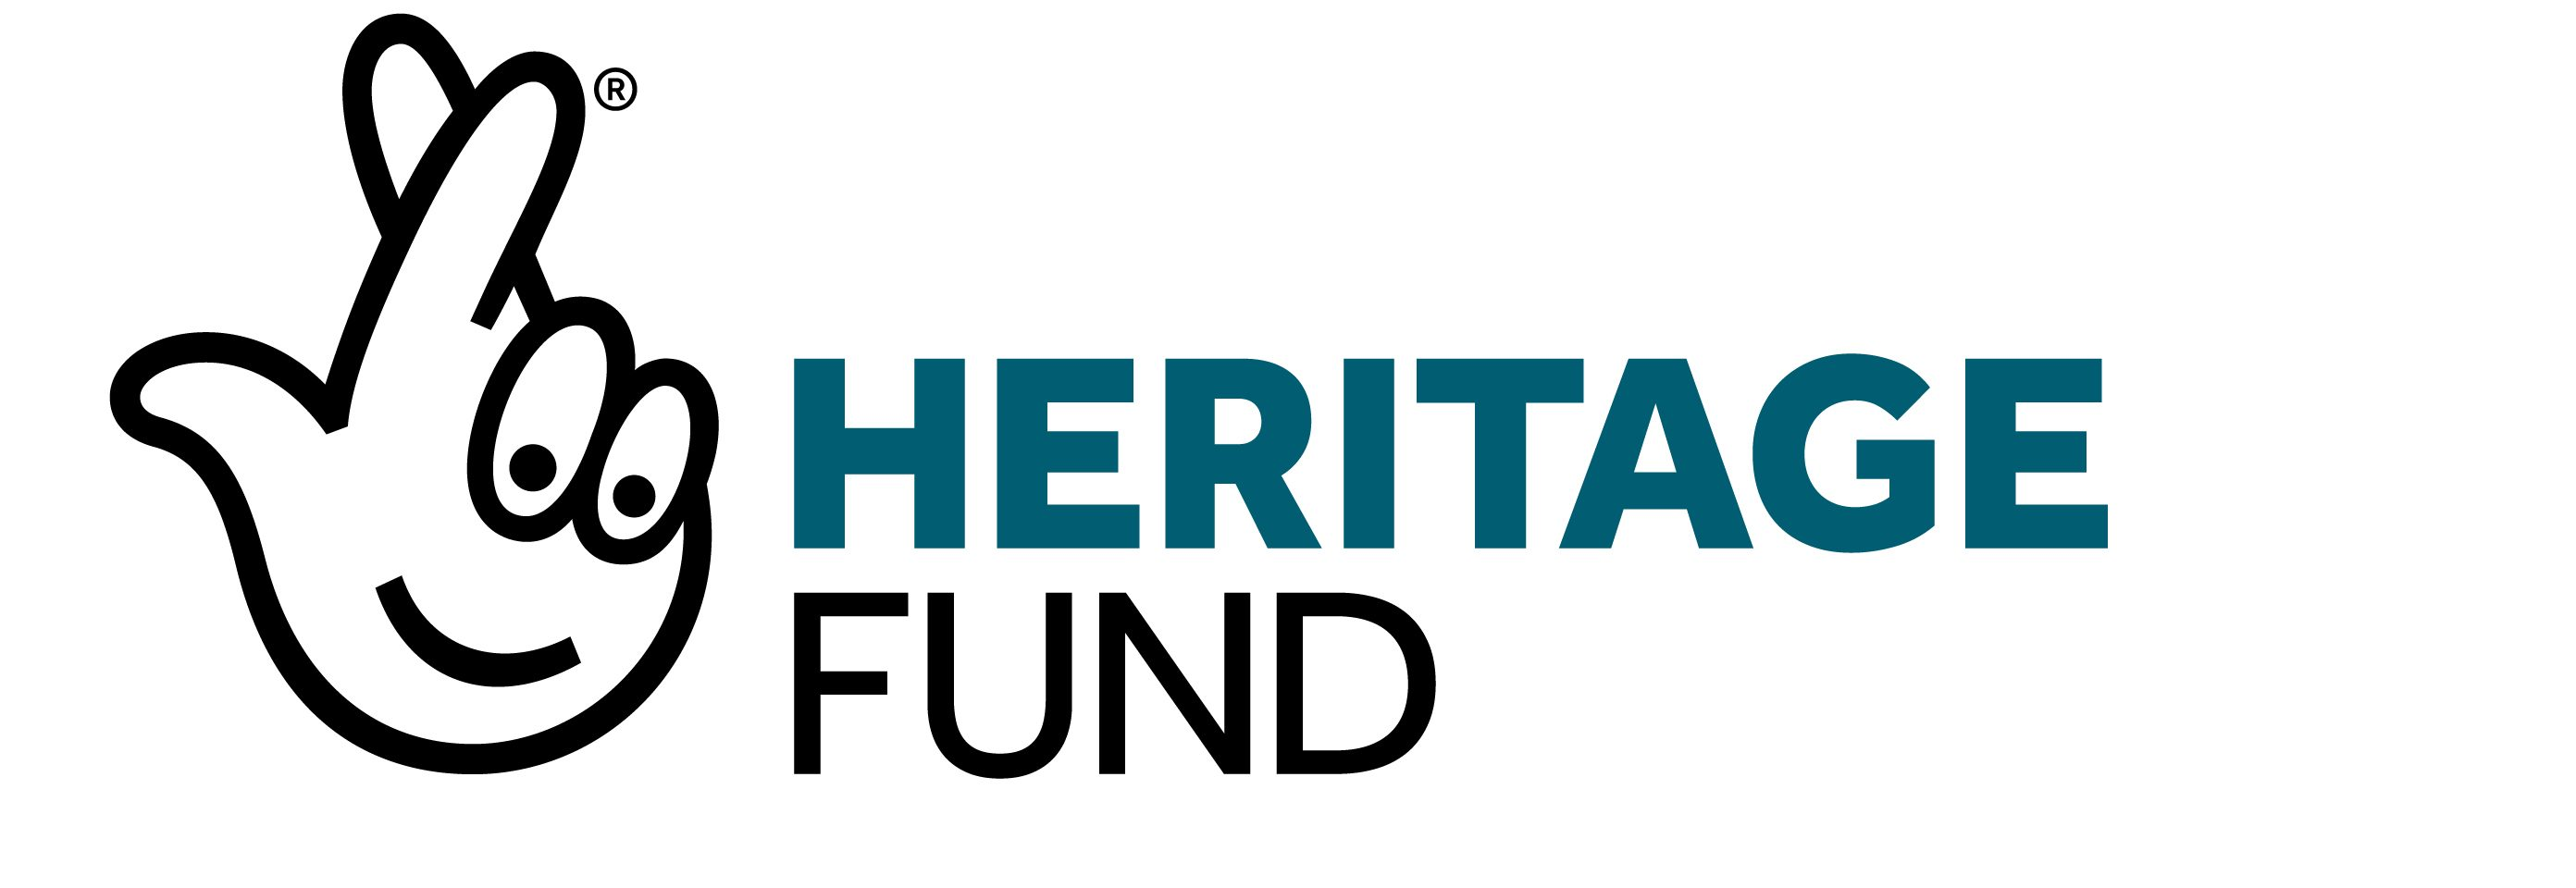 Link to the Heritage Fund website